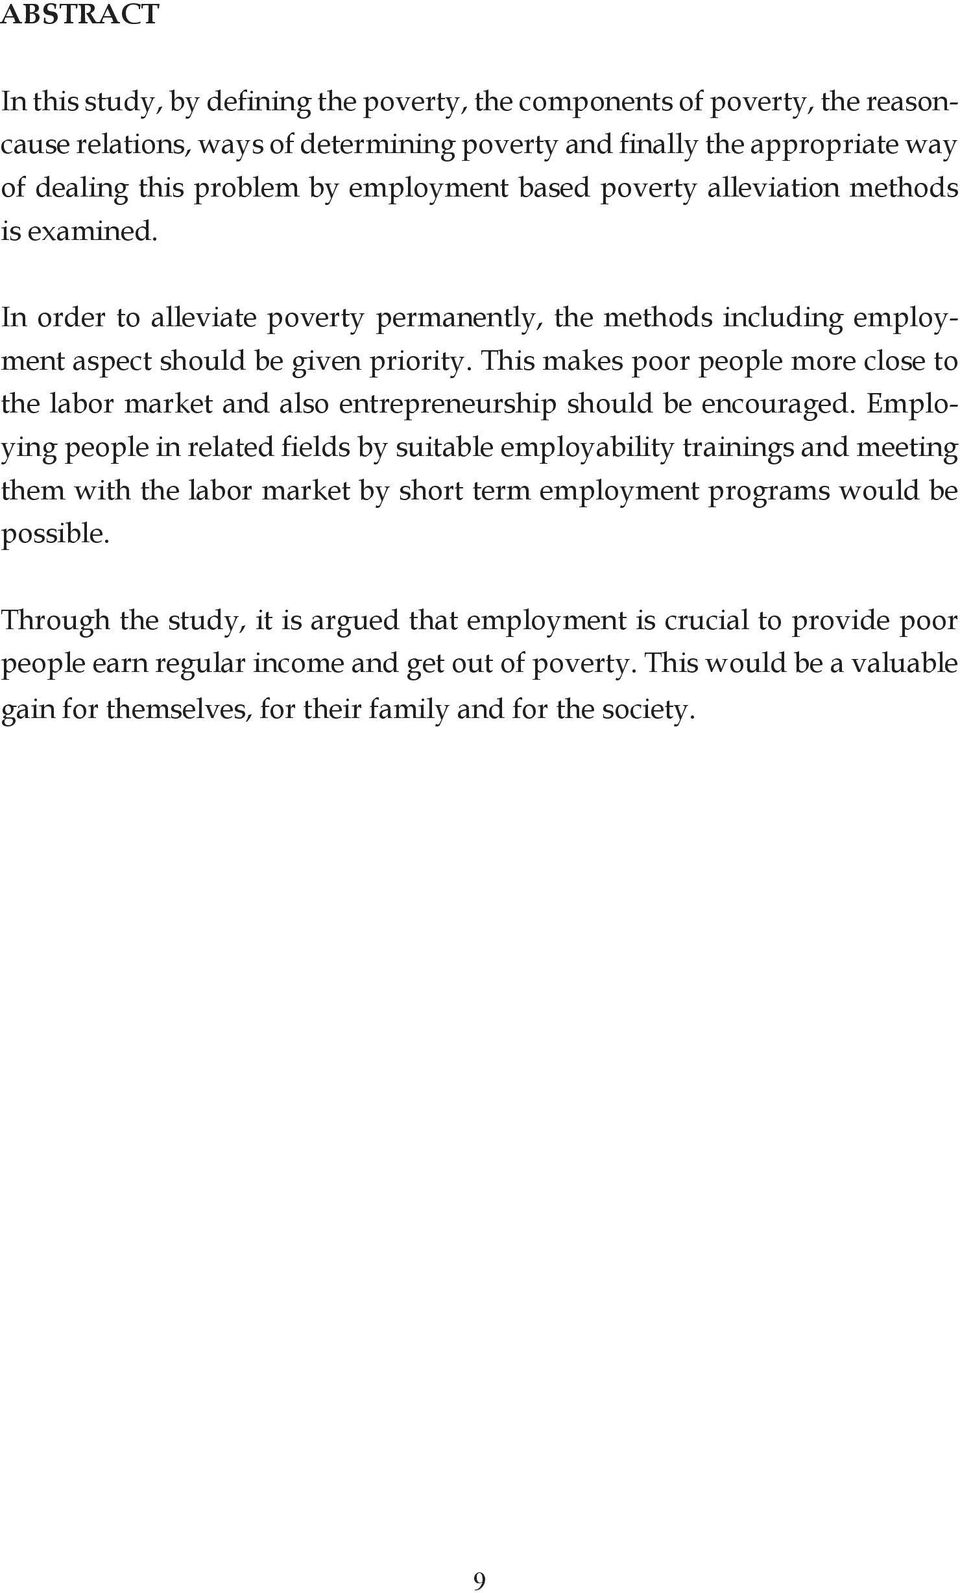 This makes poor people more close to the labor market and also entrepreneurship should be encouraged.